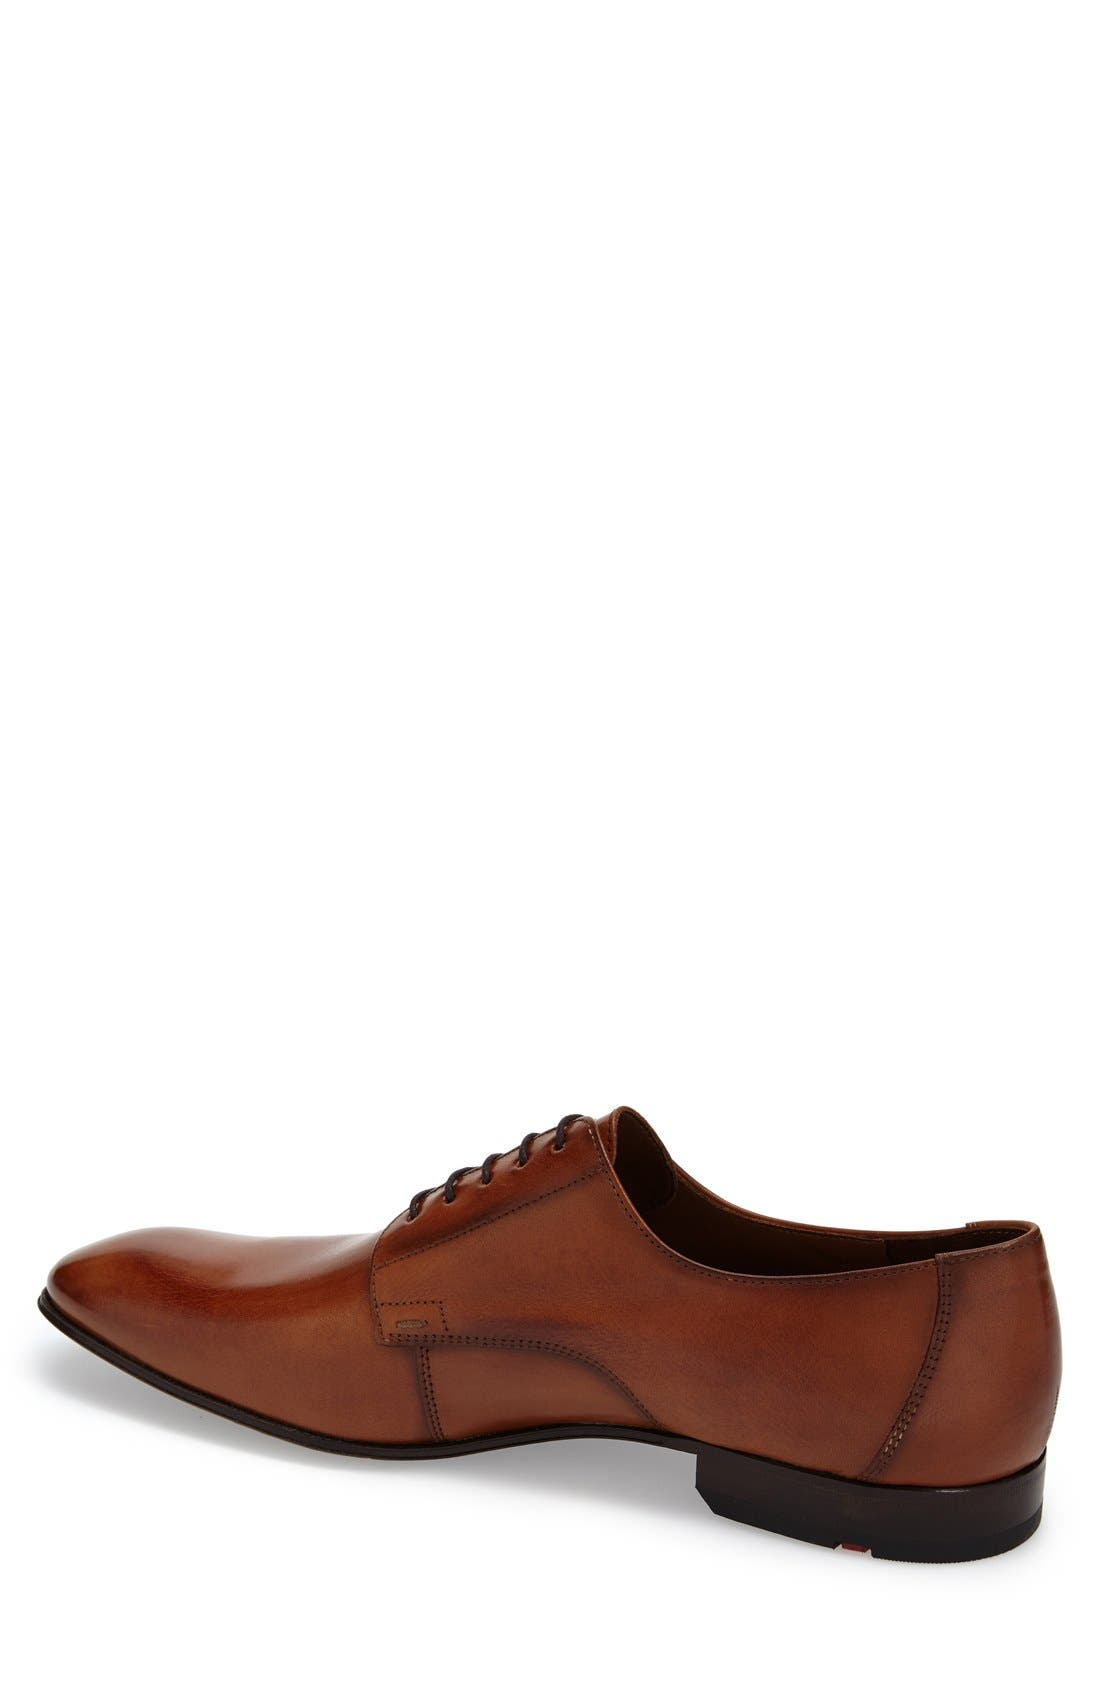 'Laurin' Plain Toe Derby,                             Alternate thumbnail 2, color,                             LIGHT BROWN